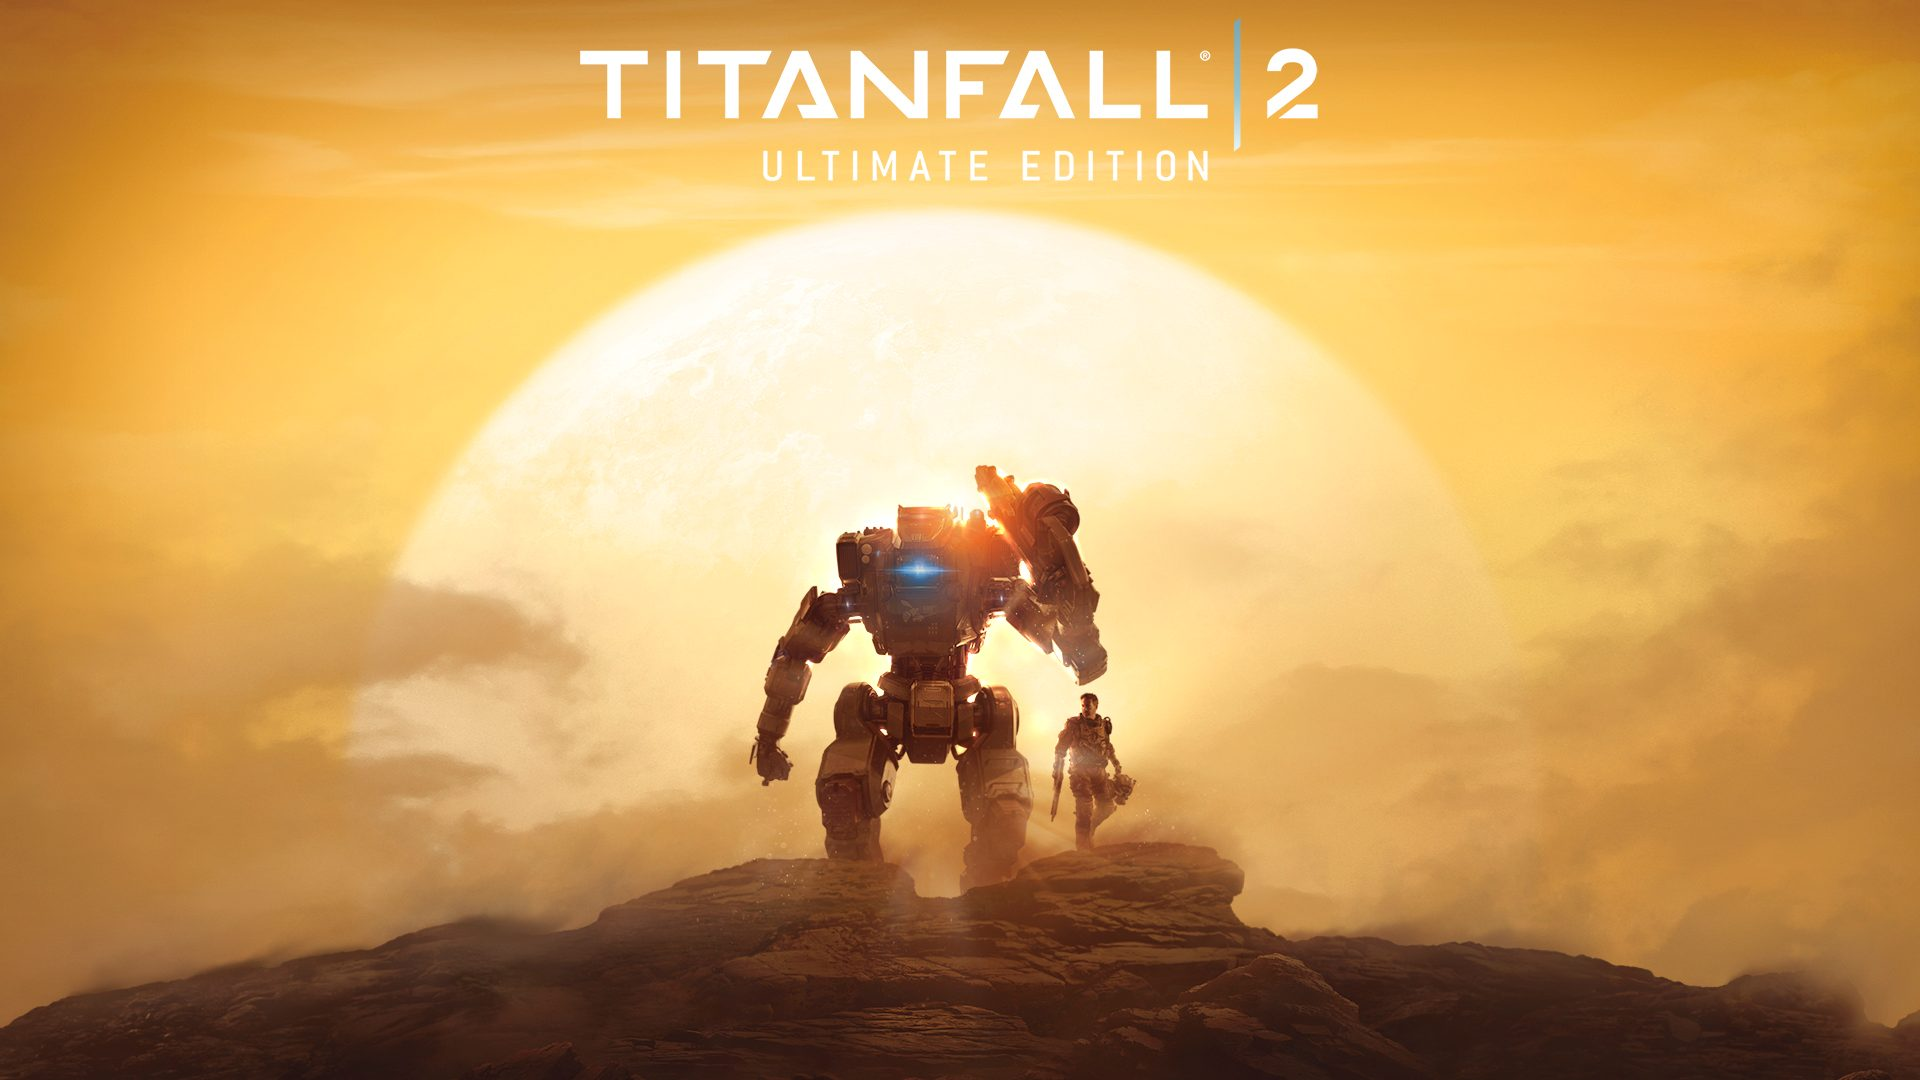 Fall Live Wallpaper For Pc Titanfall 2 Ultimate Edition Is Now Available Titanfall